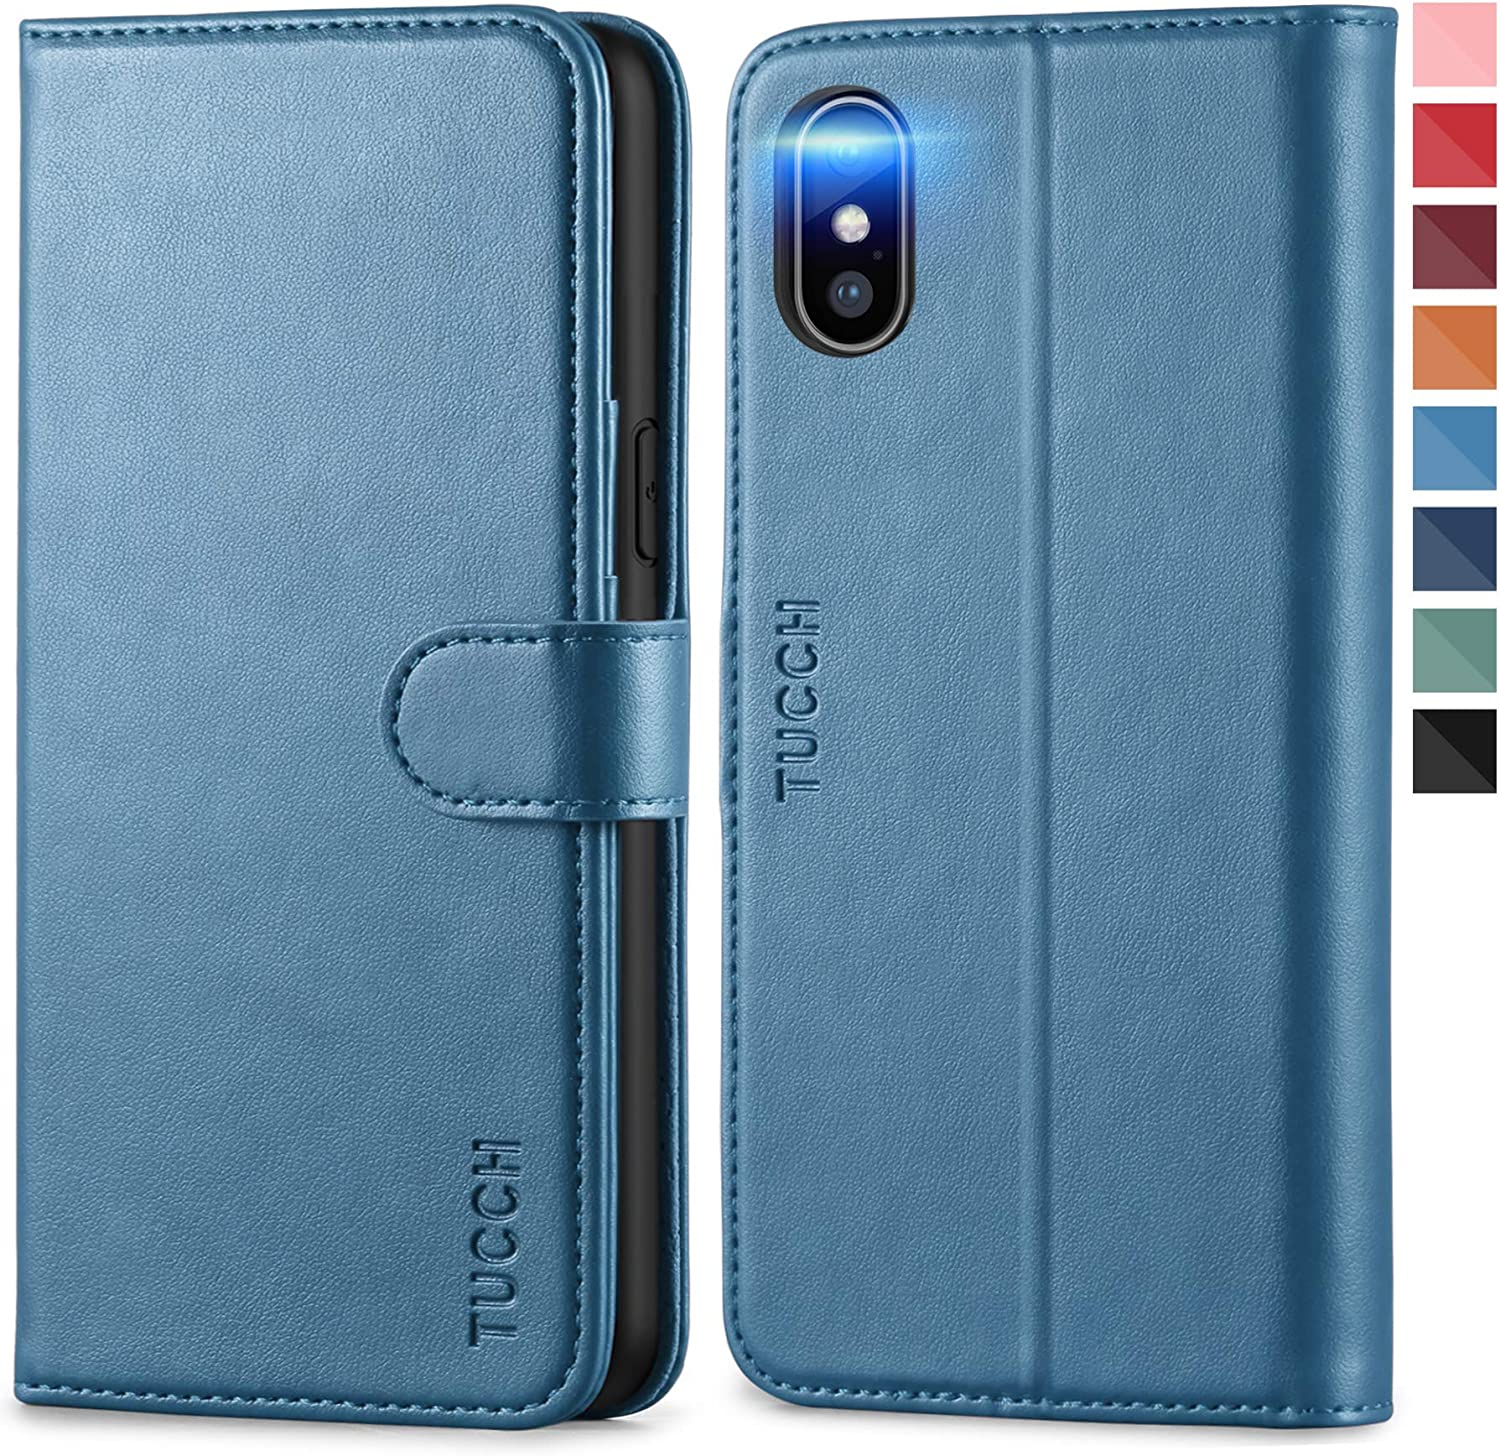 TUCCH iPhone Xs Wallet Case, PU Leather [Auto Wake/Sleep] [TPU Shockproof Interior Case] Folio Cover, Stand [Wireless Charging] RFID Credit Card Holder Compatible iPhone with Xs, Lake Blue